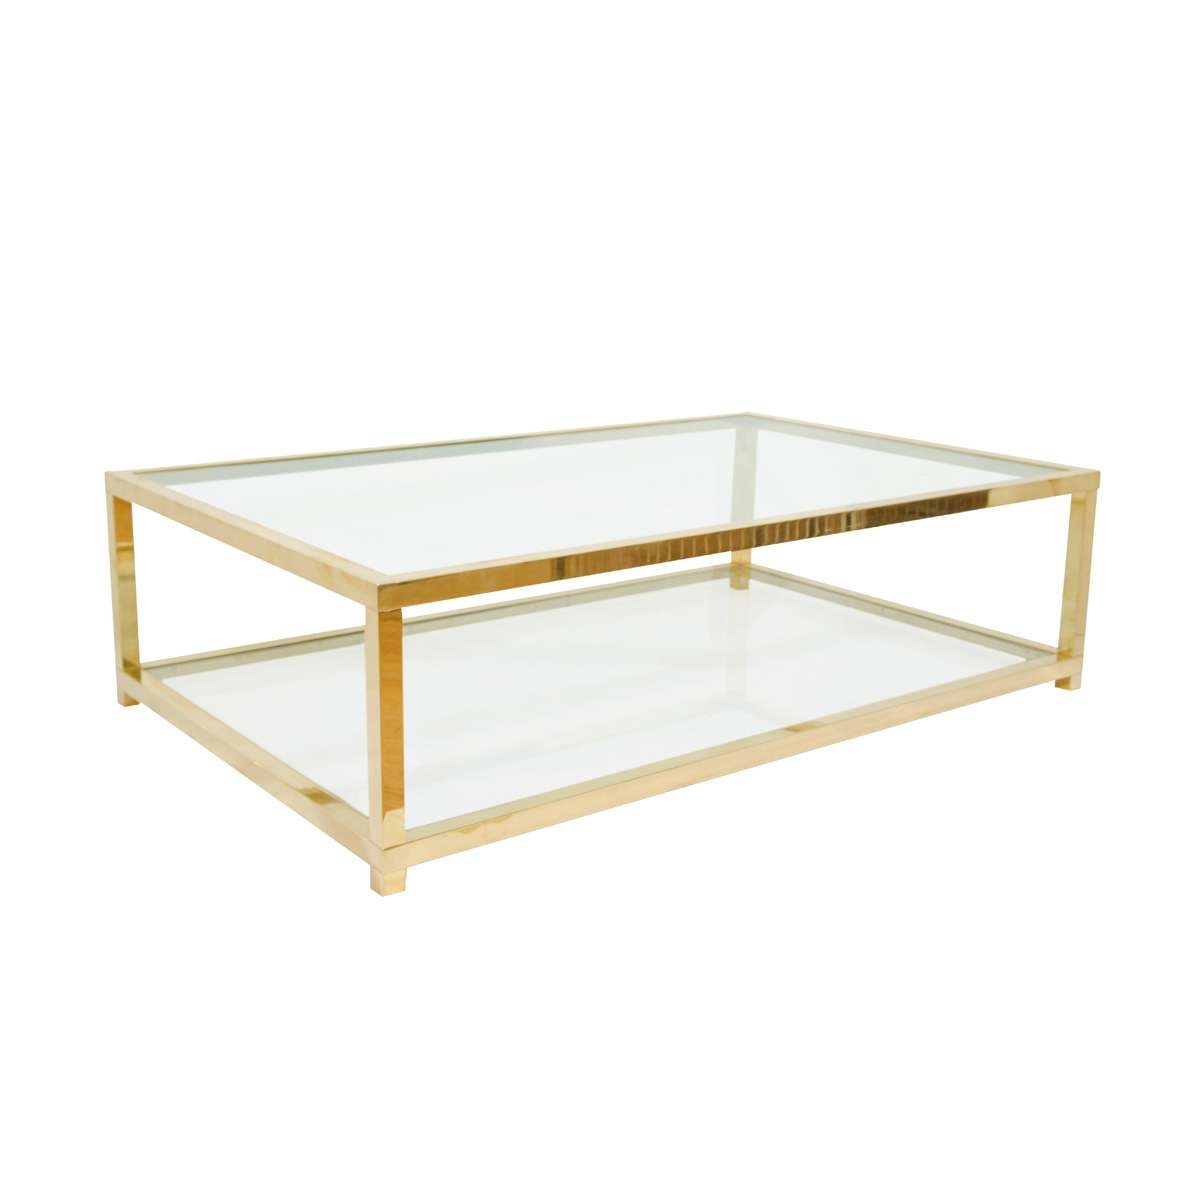 Preferred Bronze And Glass Coffee Tables Regarding Coffee Tables : Simple Two Tiered Brass And Glass Coffee Table (View 18 of 20)